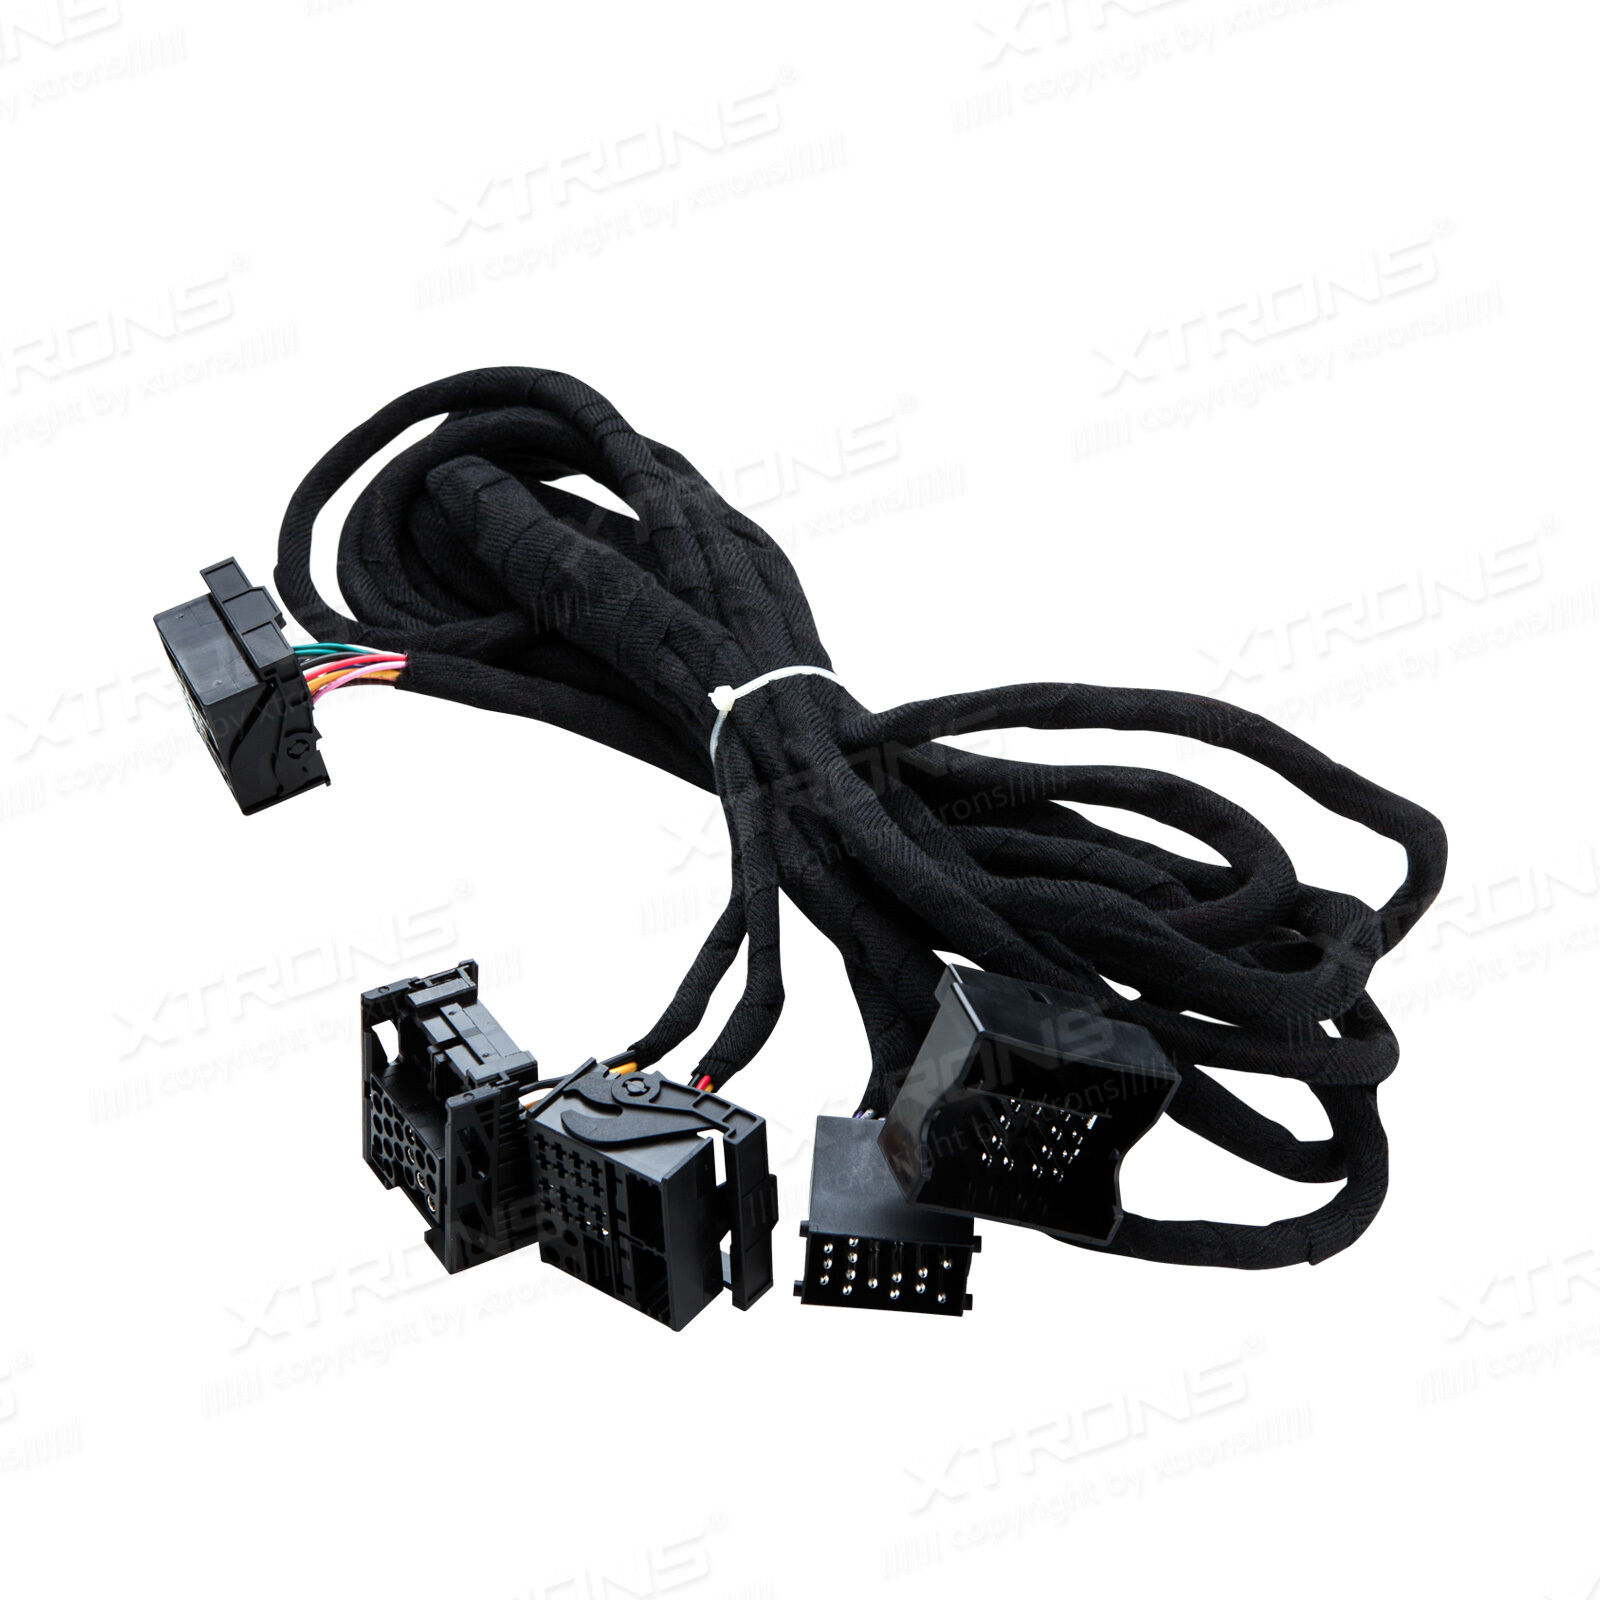 s l1600 universal standard car audio and video wire harnesses ebay universal radio wiring harness at cos-gaming.co